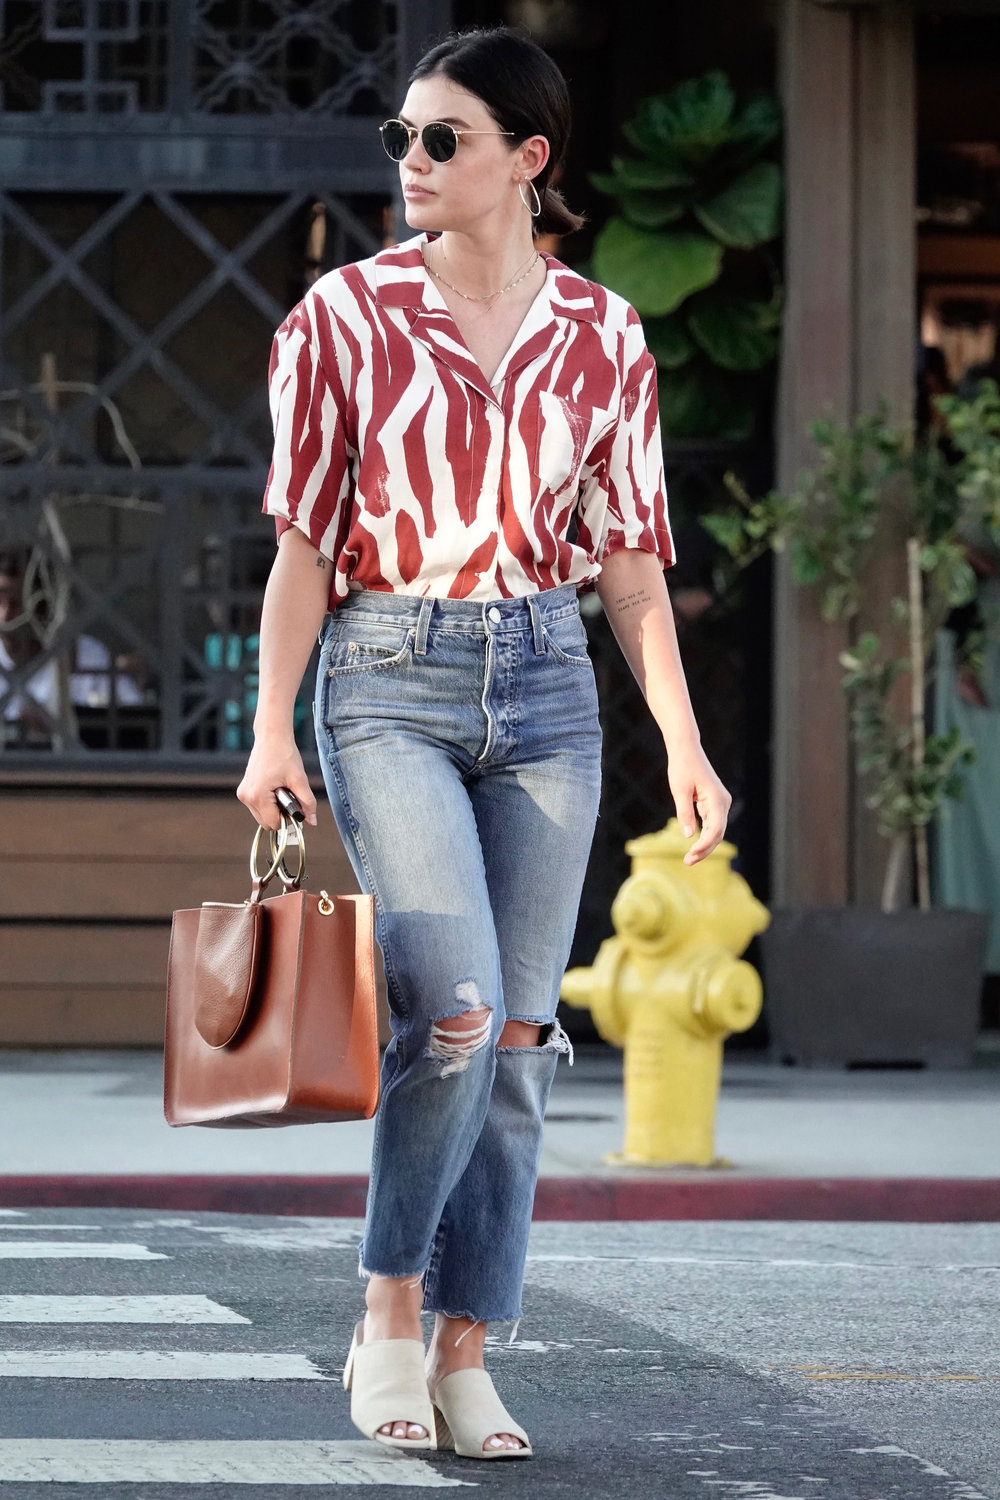 lucy-hale-red-printed-shirt.jpg